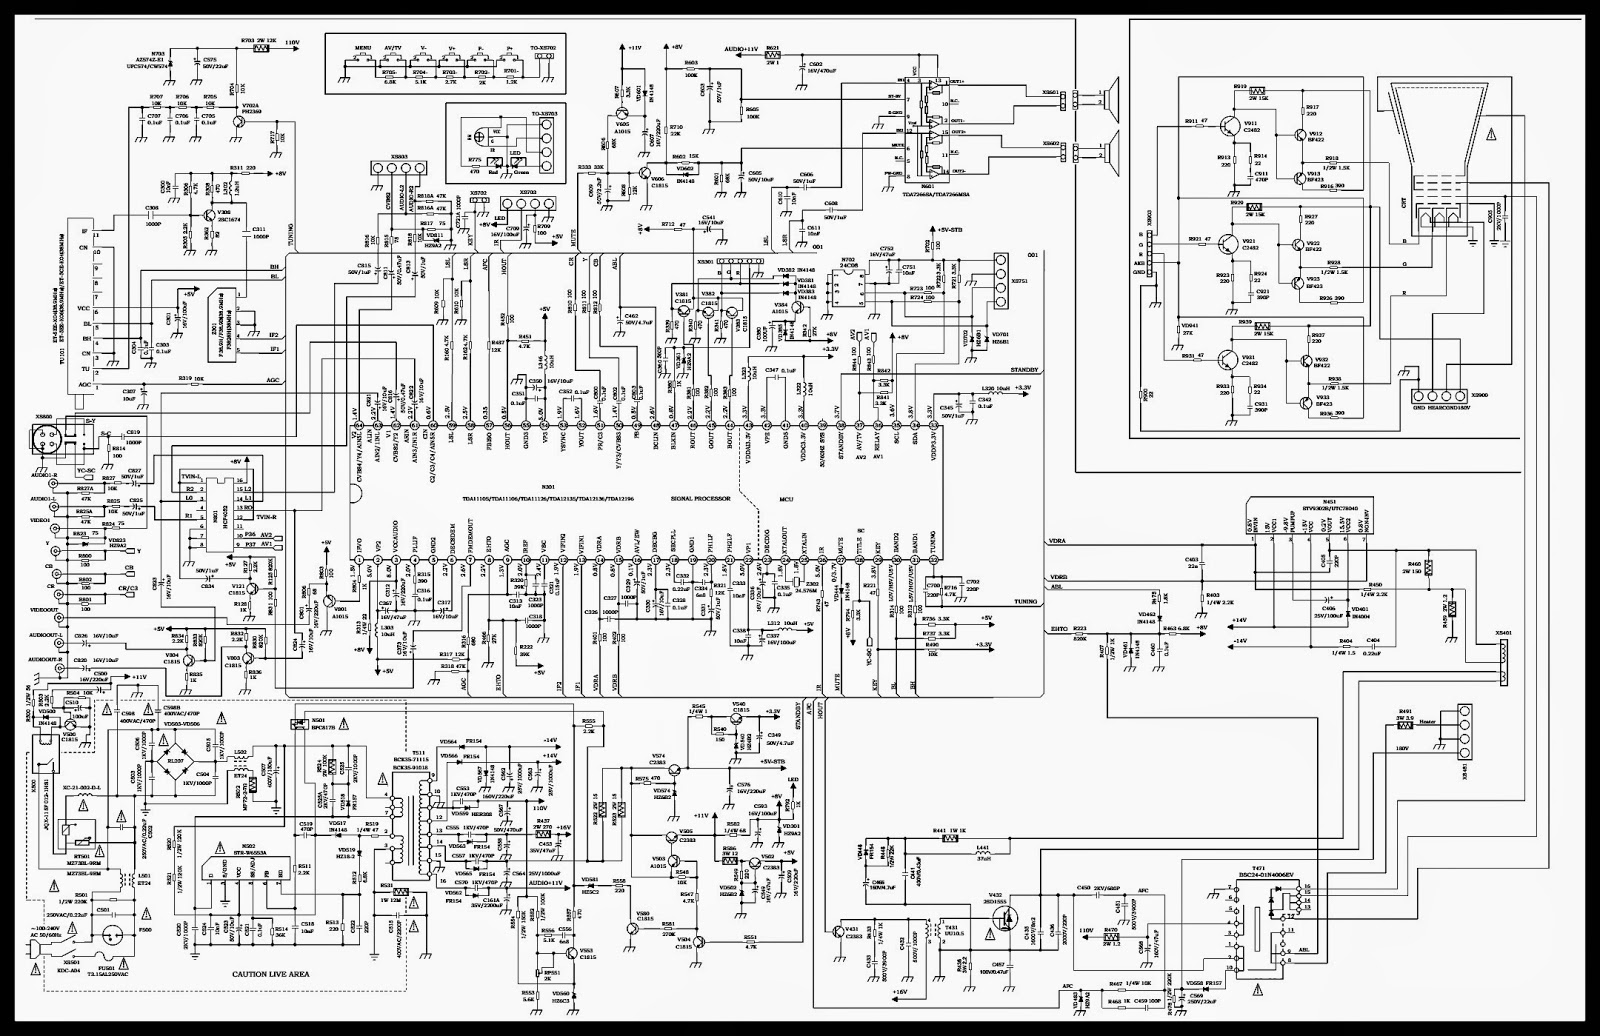 COLOR TV CIRCUIT DIAGRAM - TDA11105 - TDA11106 SIGNAL PROCESSOR ...